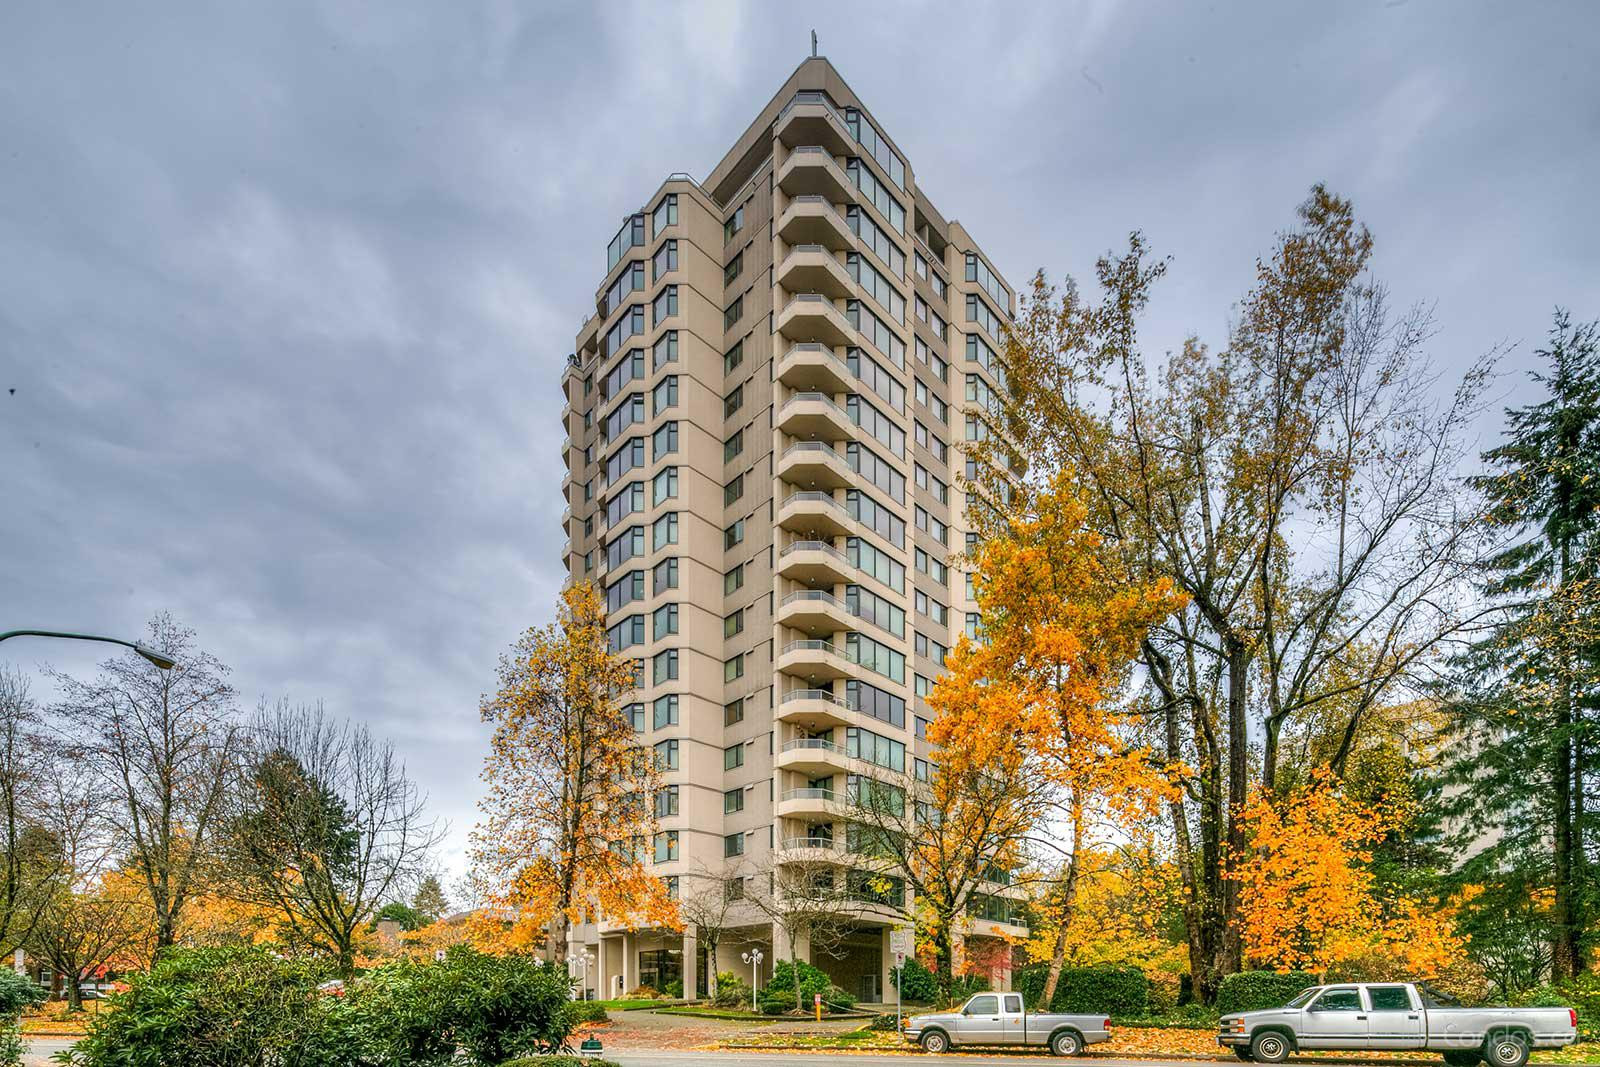 Ambassador at 7321 Halifax St, Burnaby 0